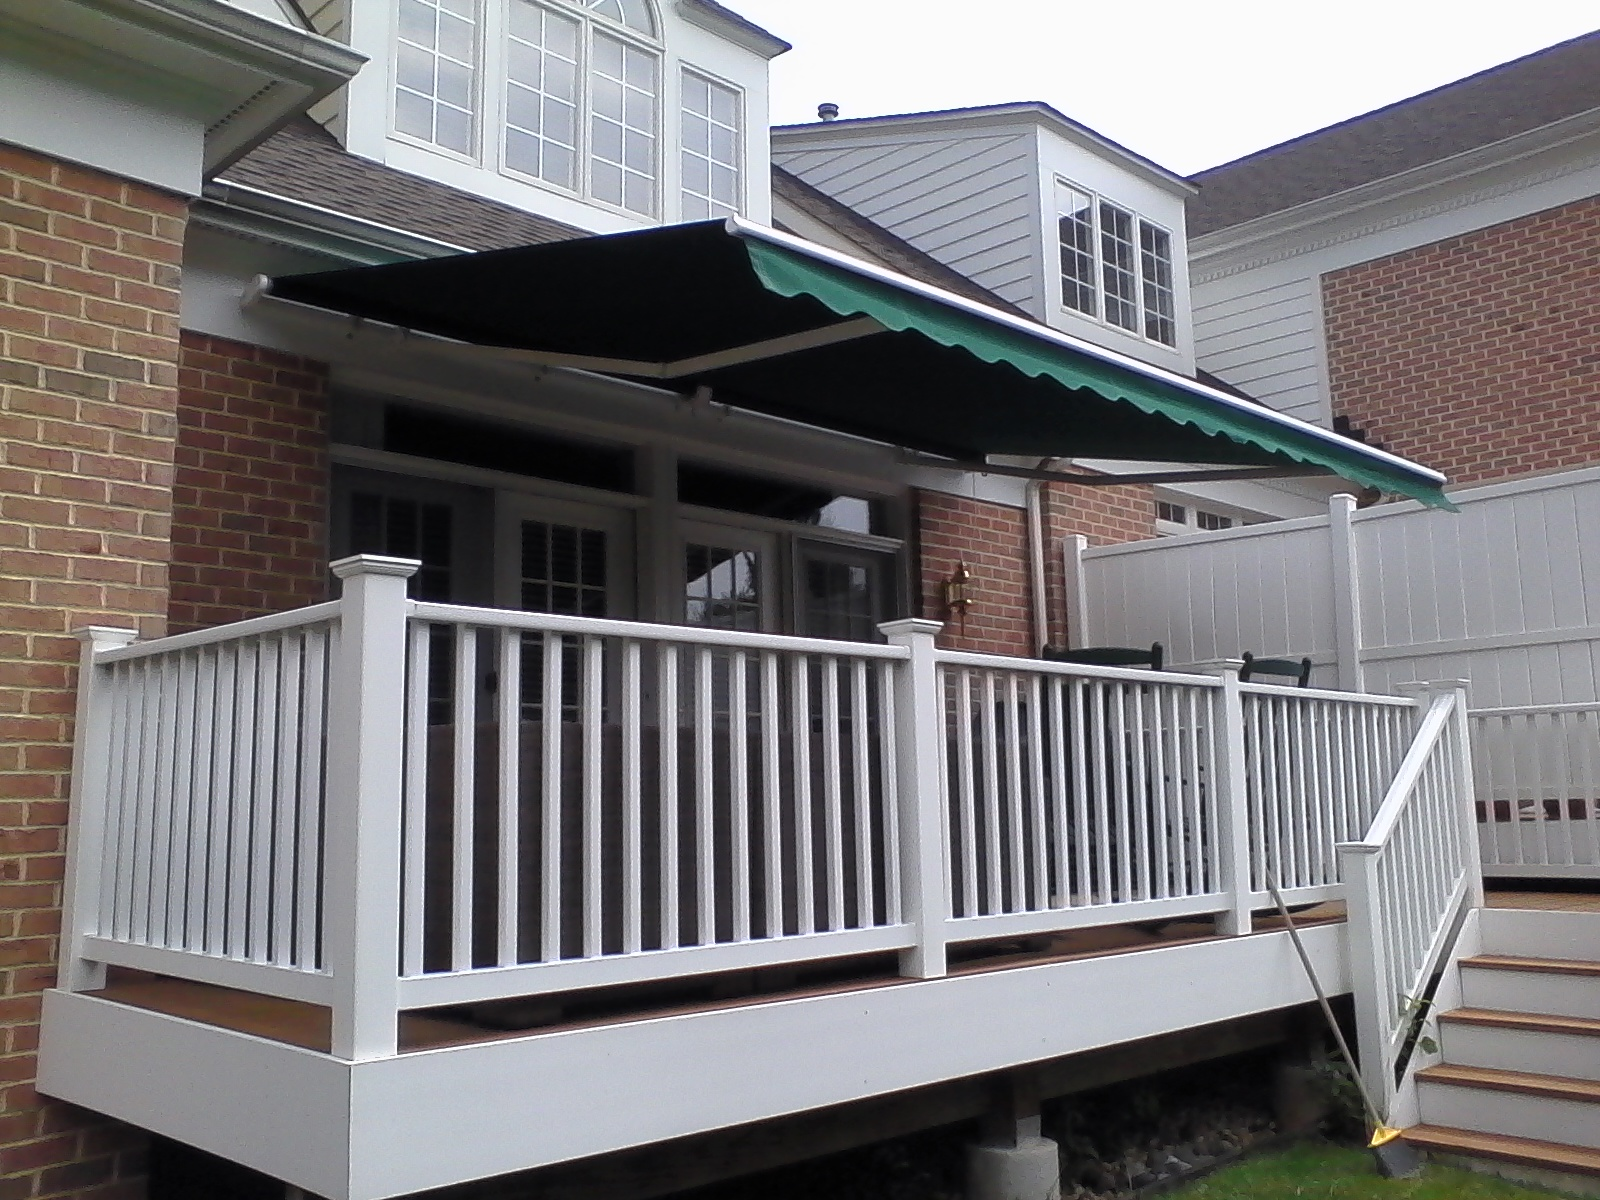 Townhouse-Retractable-Awning-Baltimore